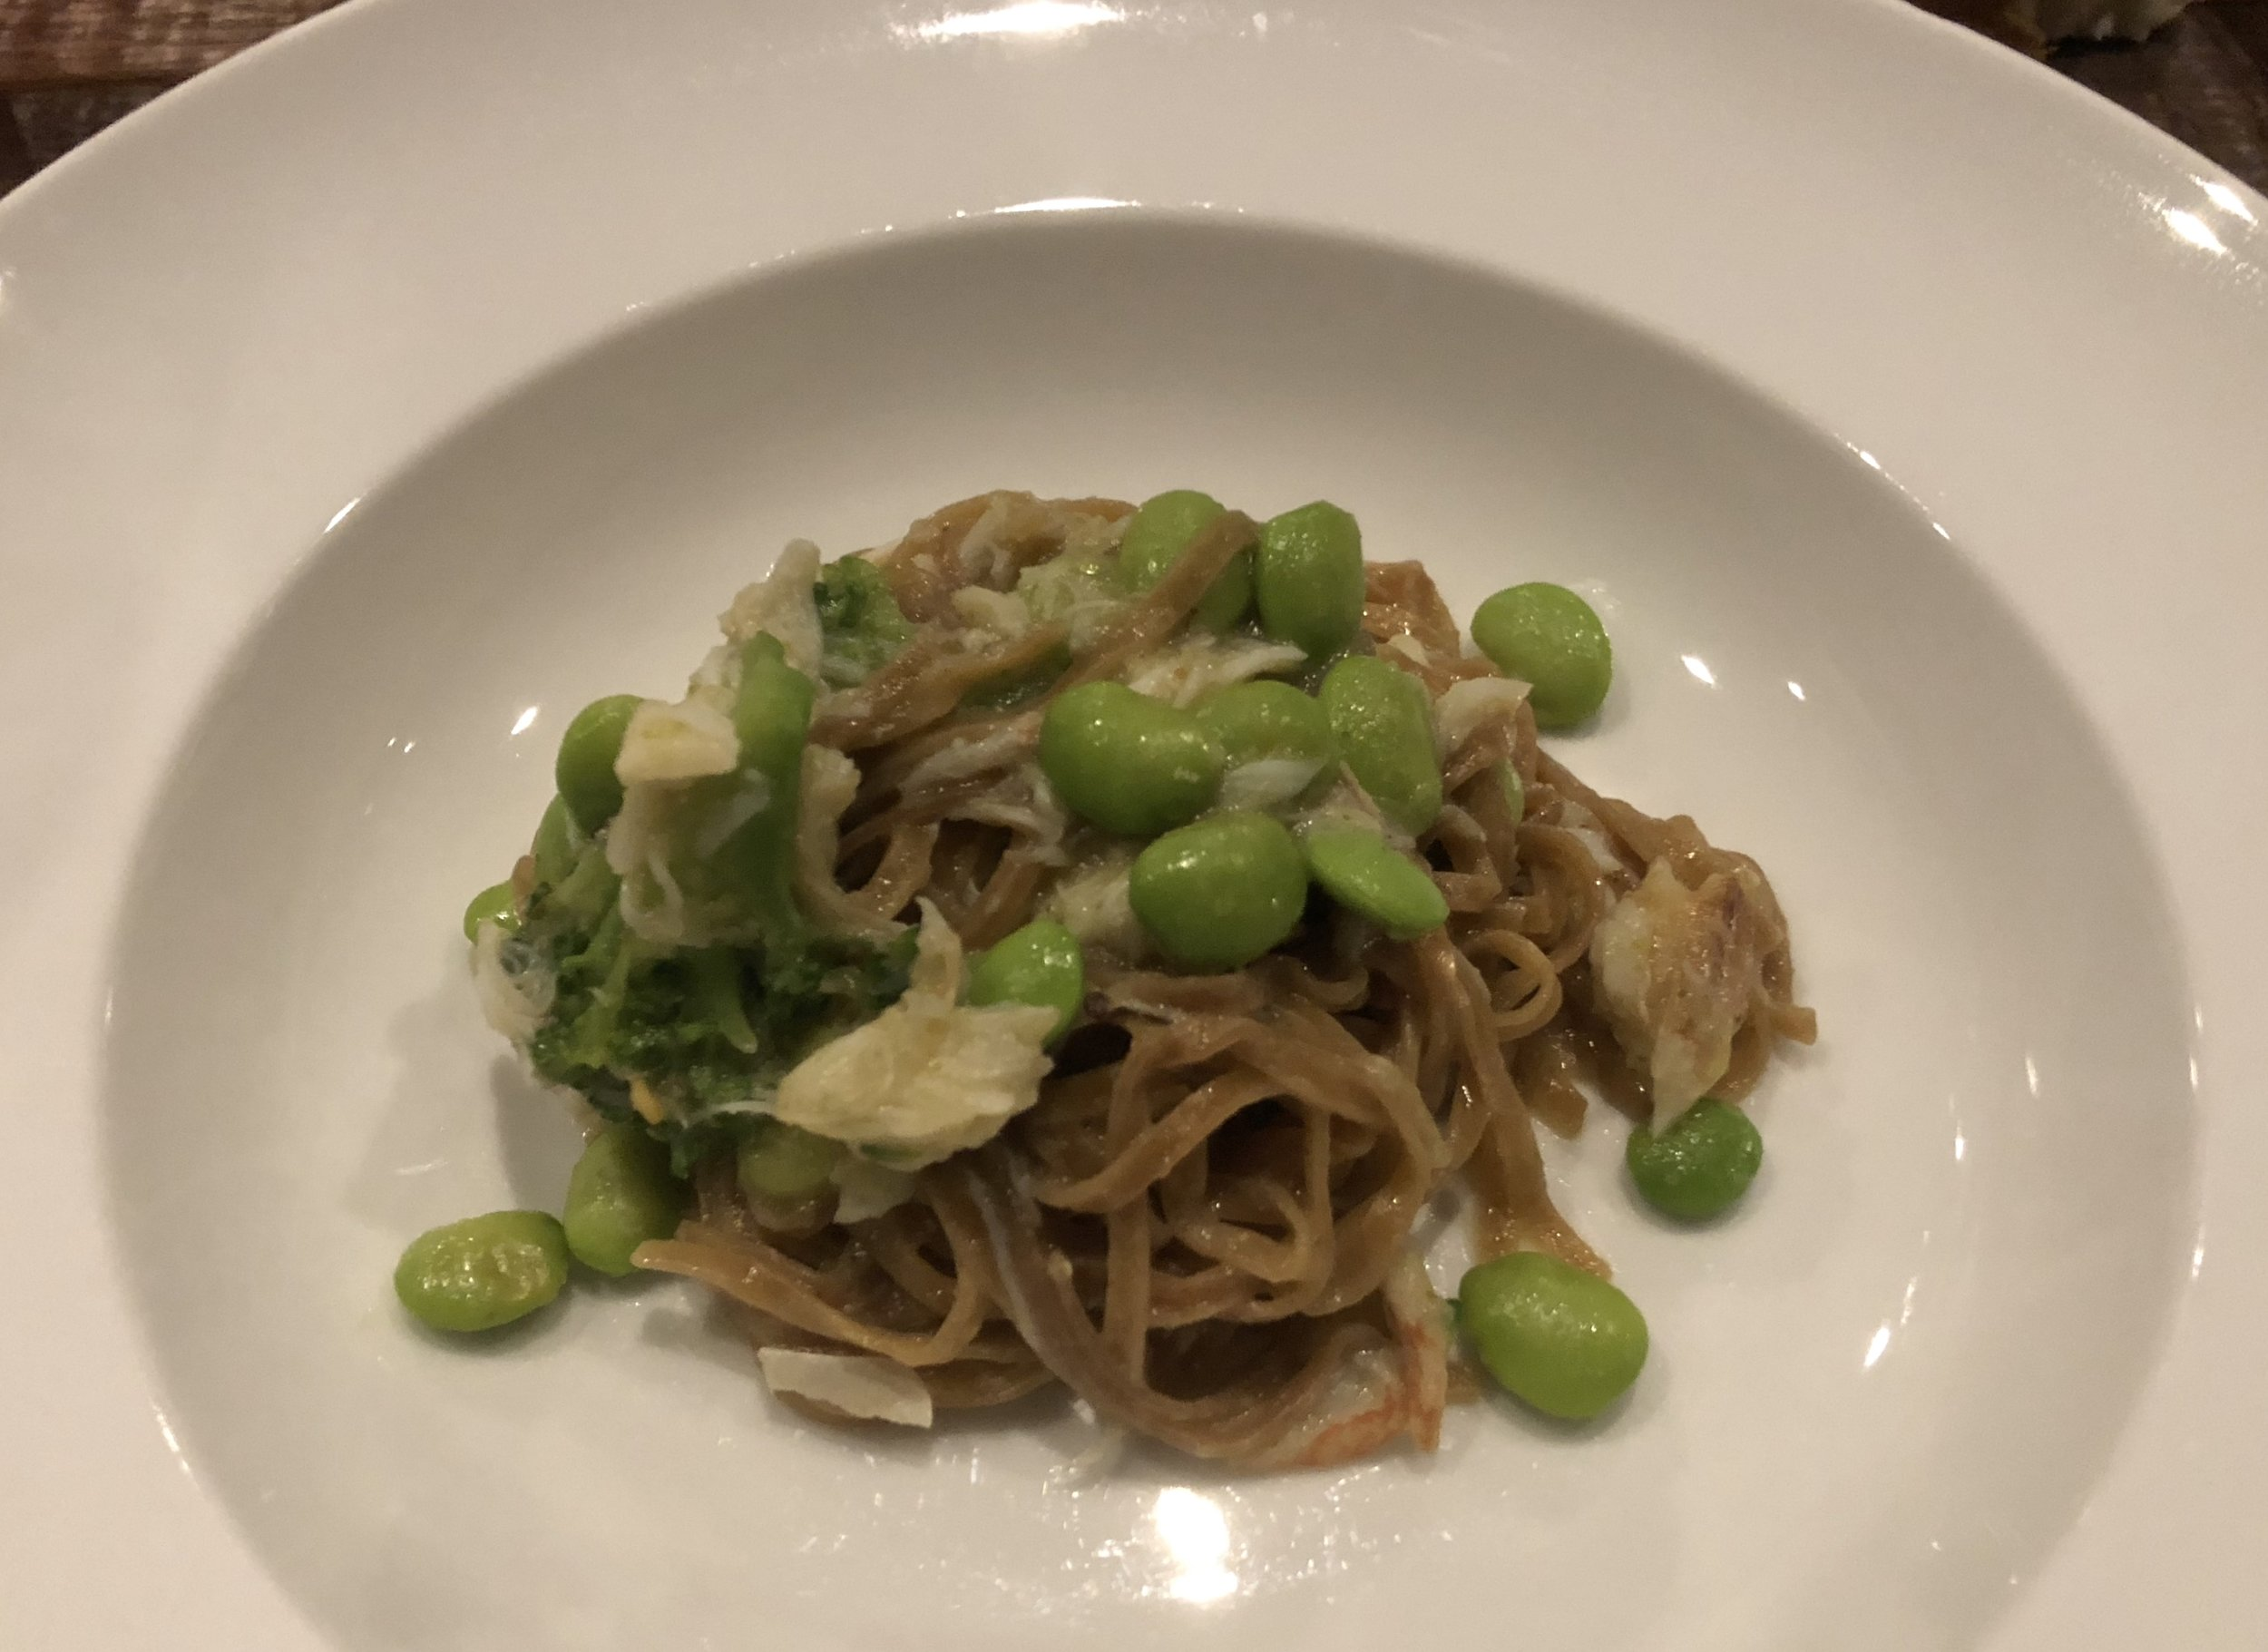 Tagliolini infused with aged sake lees and tossed with blue crab, soy beans, and broccoli.